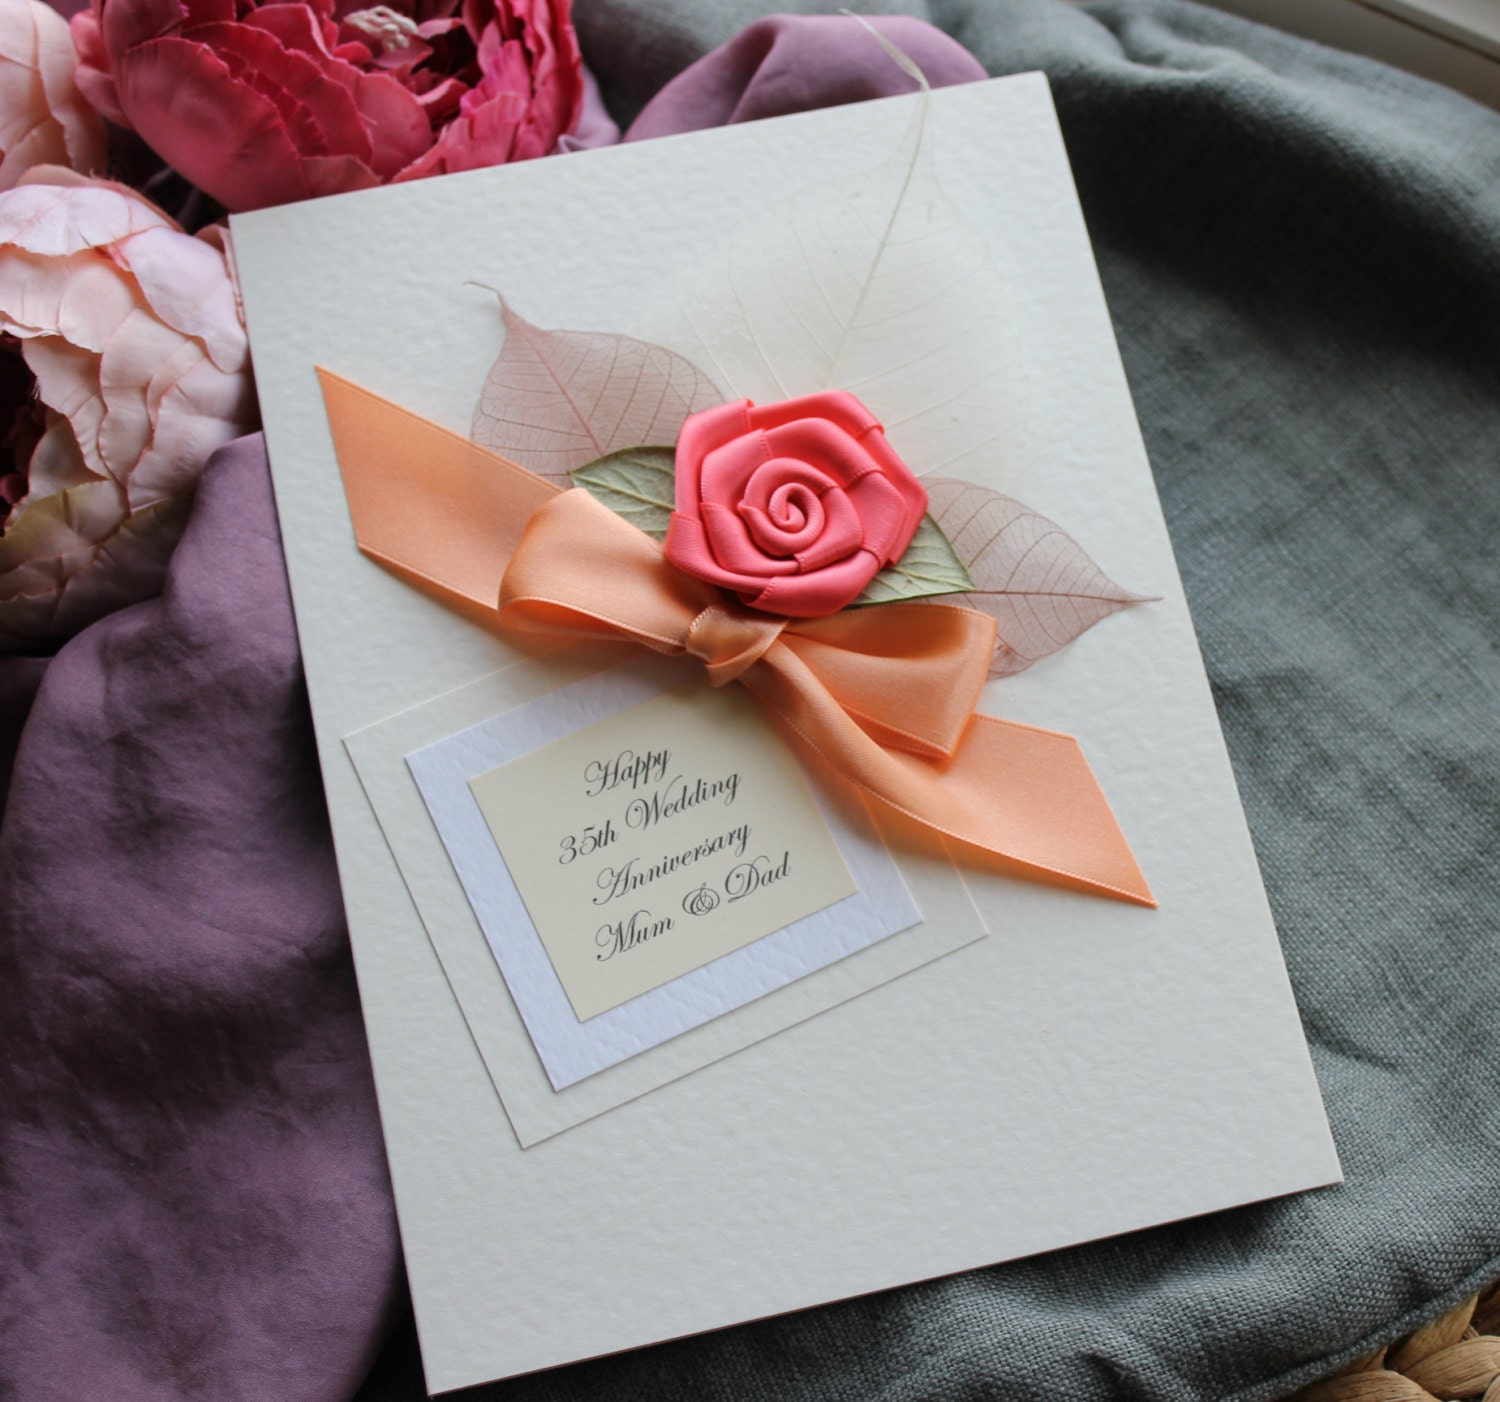 Homemade Anniversary Ideas For Husband: Personalised Handmade Card Coral 35th Wedding Anniversary